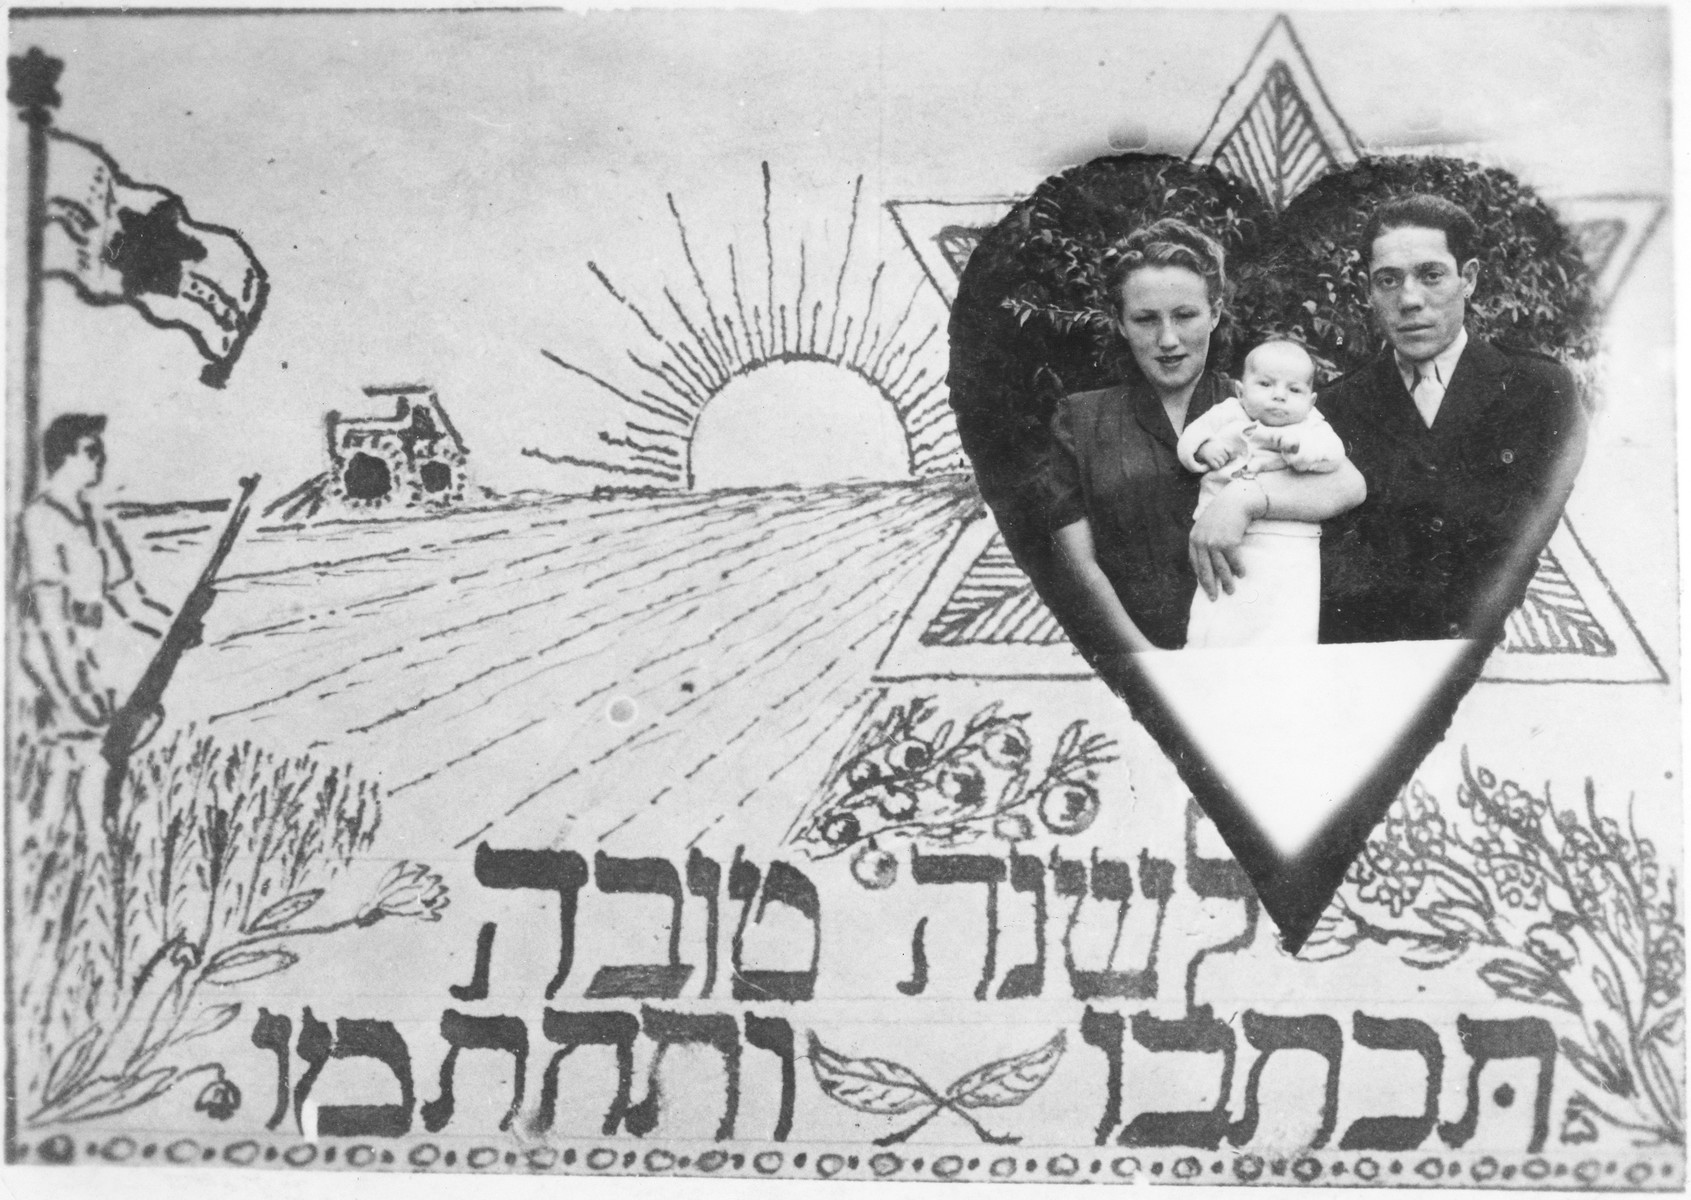 Personalized Jewish New Year's card with a photograph of the Elbaum family in the Heidenheim displaced persons camp.  The card is illustrated with a sketch of a Jewish farming settlement in Palestine.